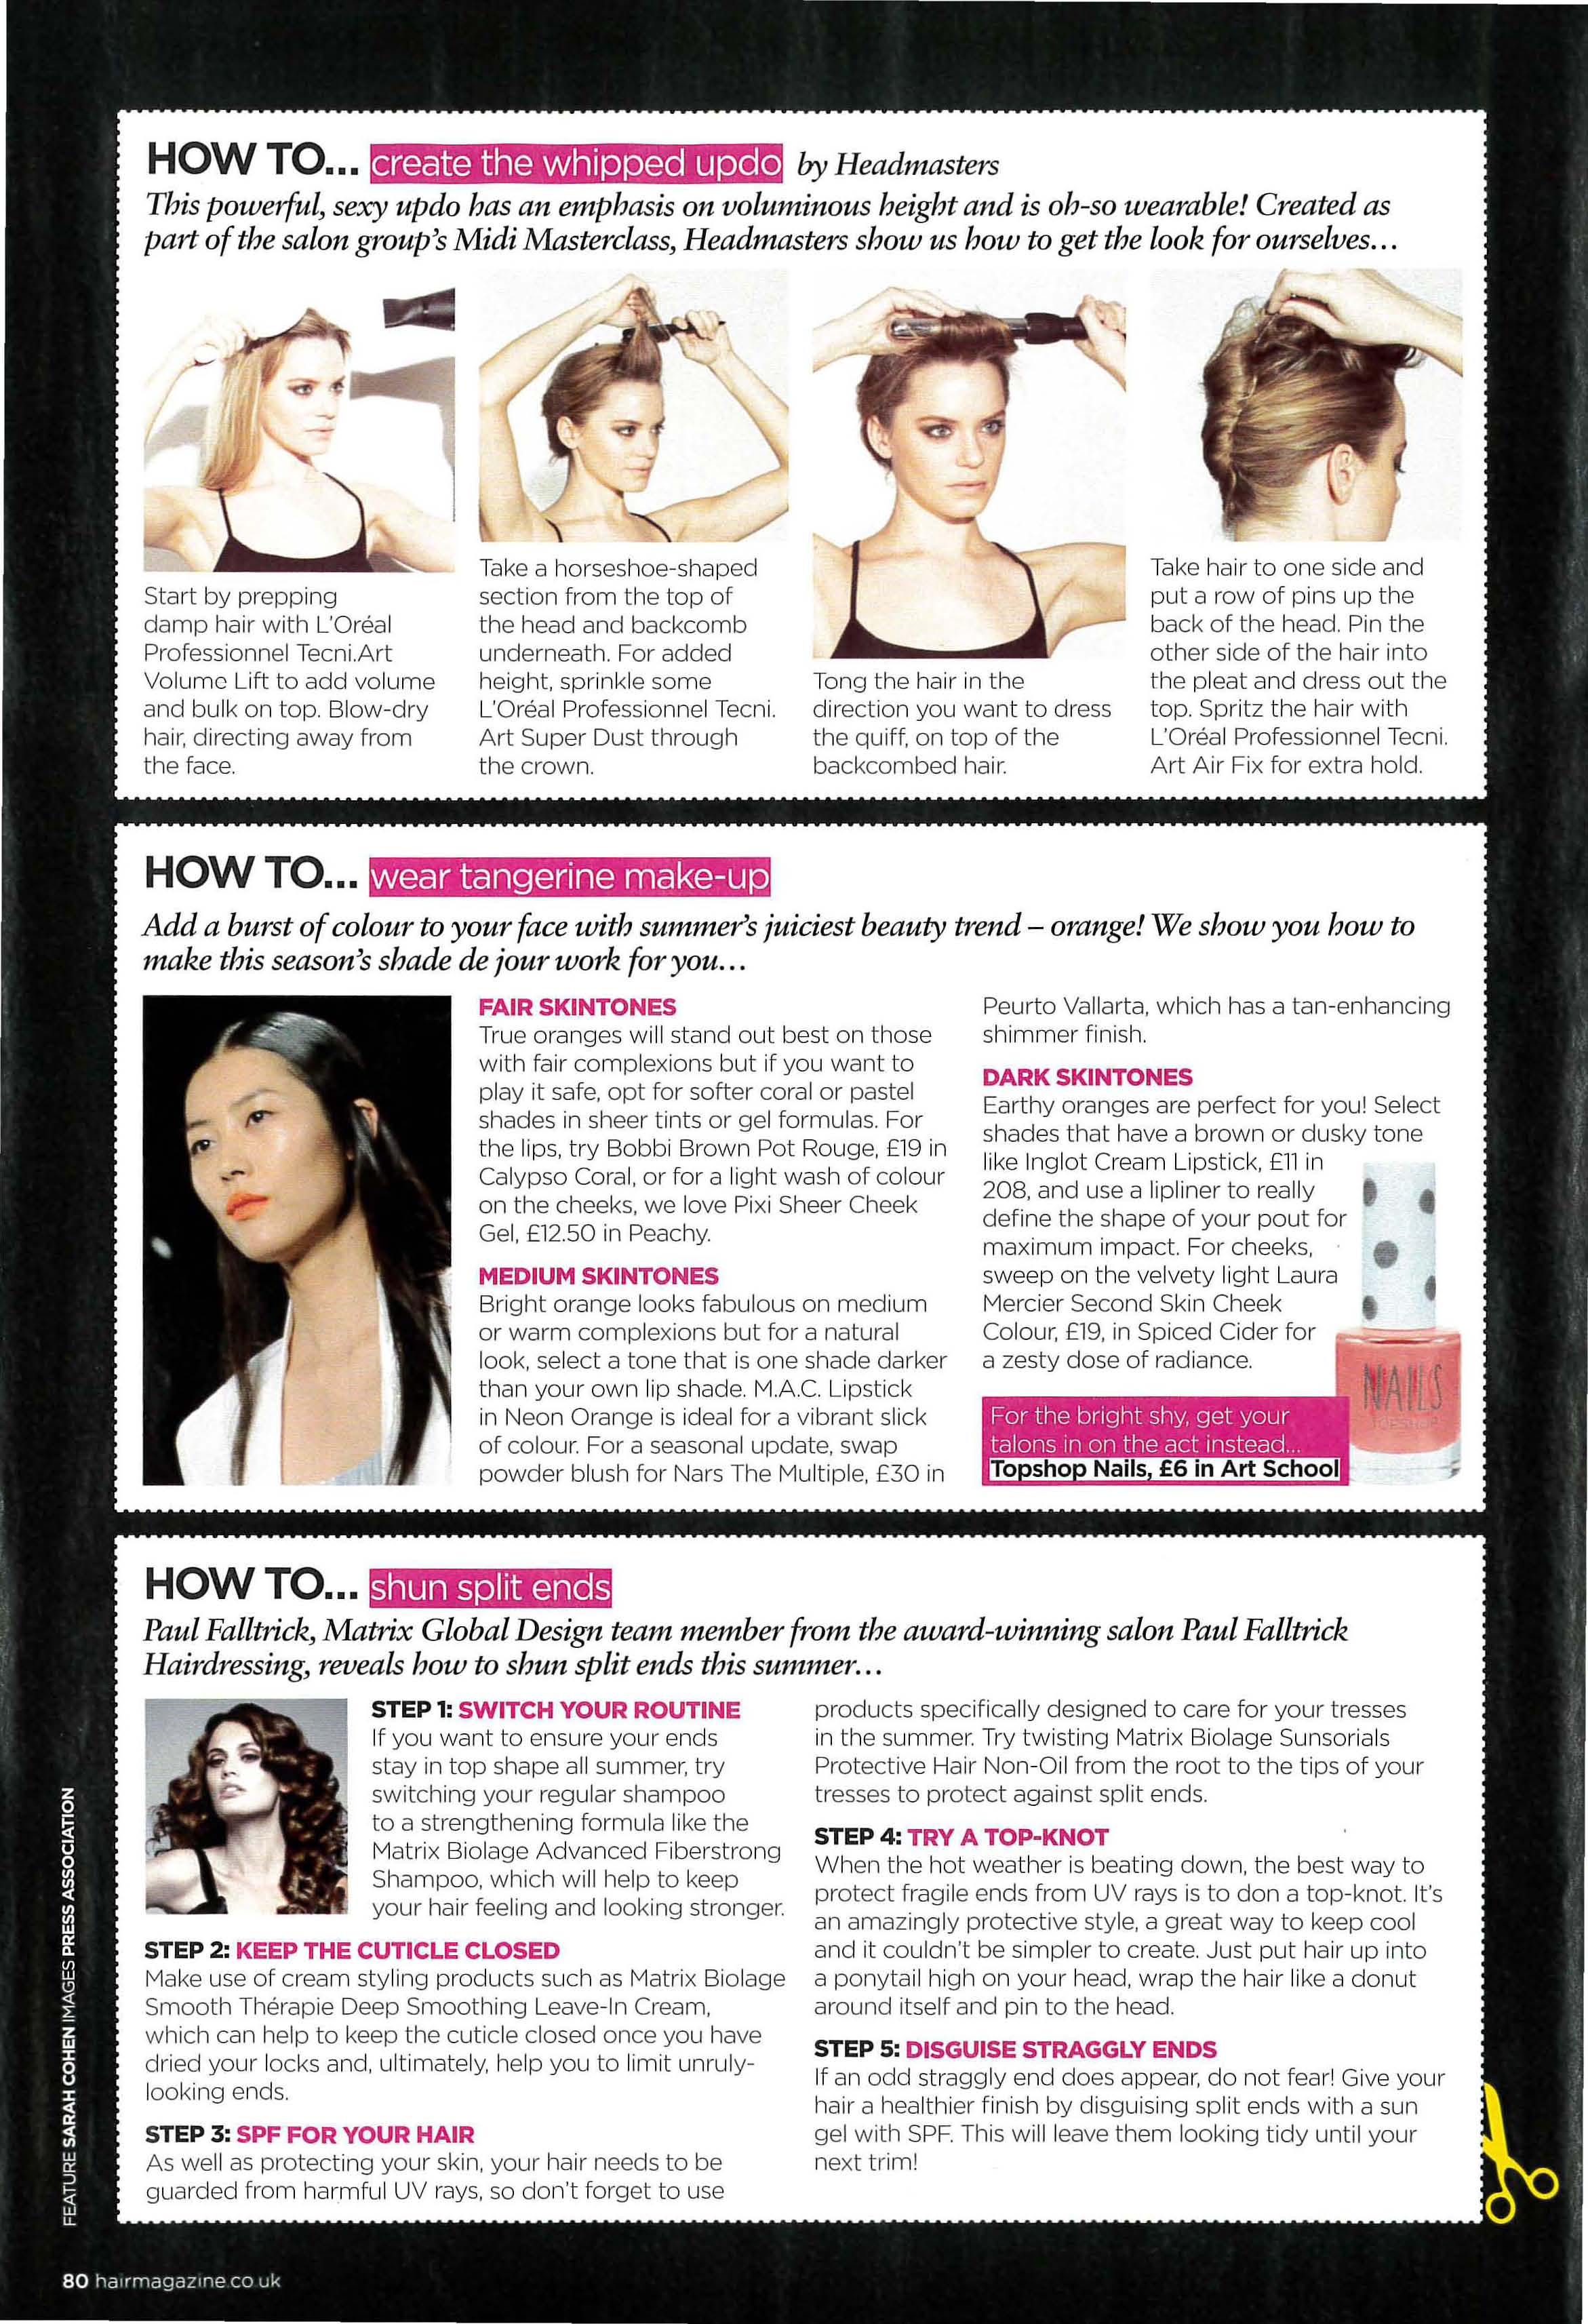 Hair Magazine featuring Whipped Updo Midi Masterclass_Page_2